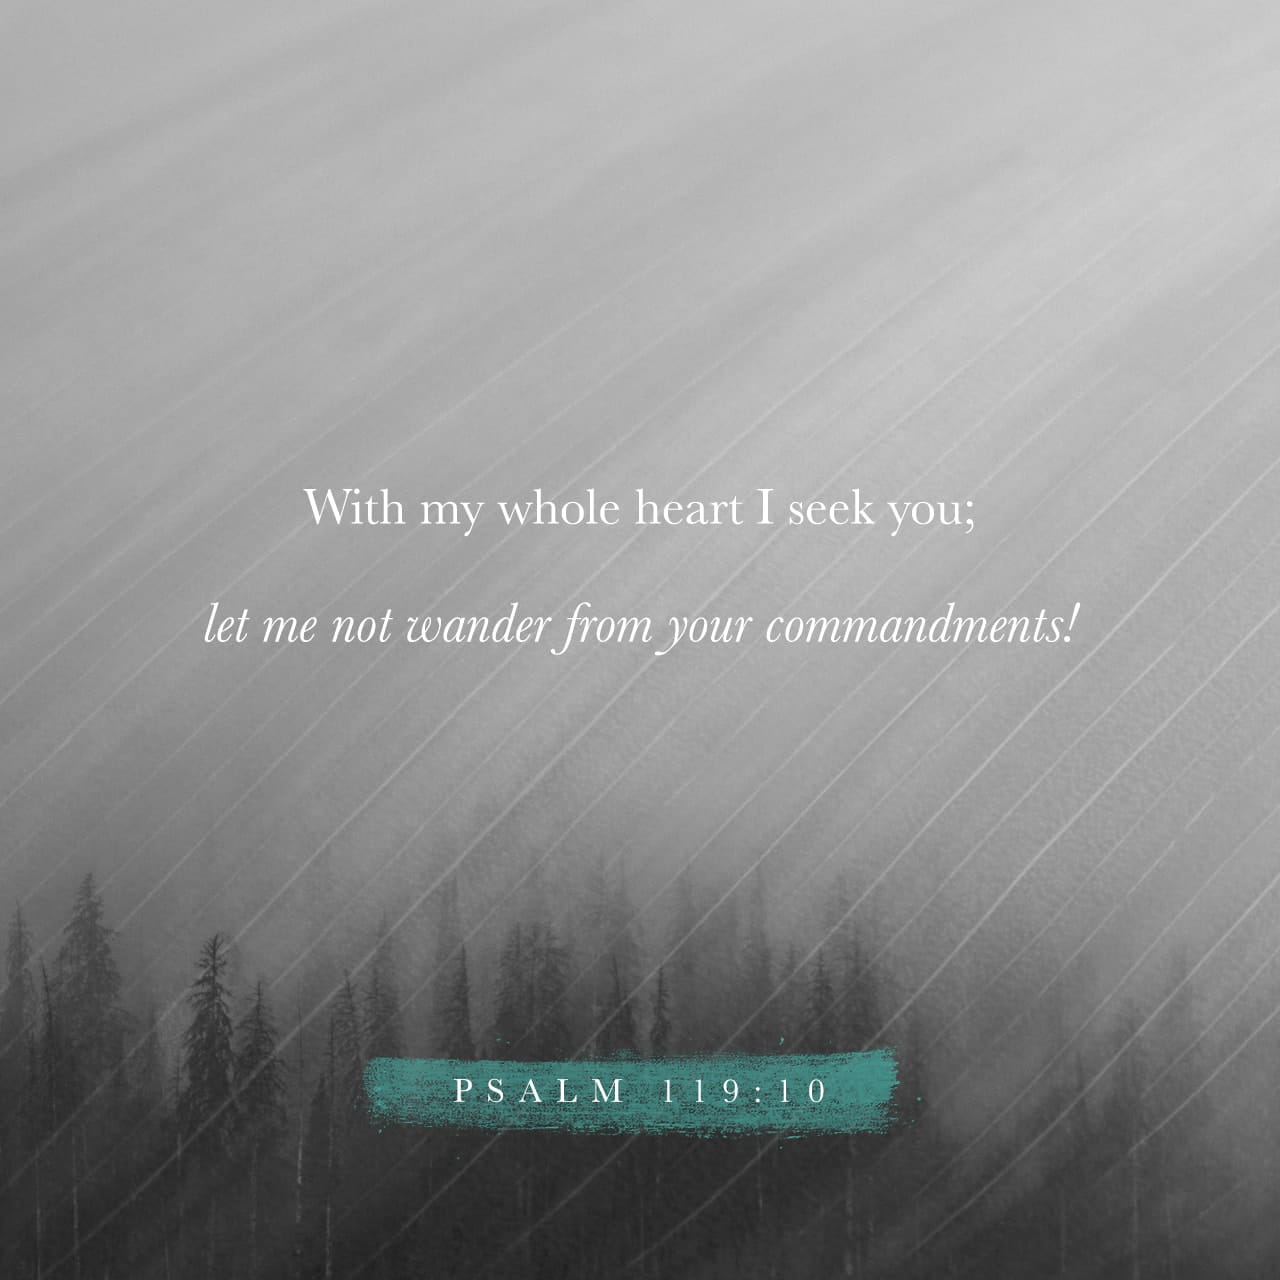 Psalm 119:10 With my whole heart have I sought You, inquiring for and of You and yearning for You; Oh, let me not wander or step aside [either in ignorance or willfully] from Your commandments. [II Chron. 15:15.]